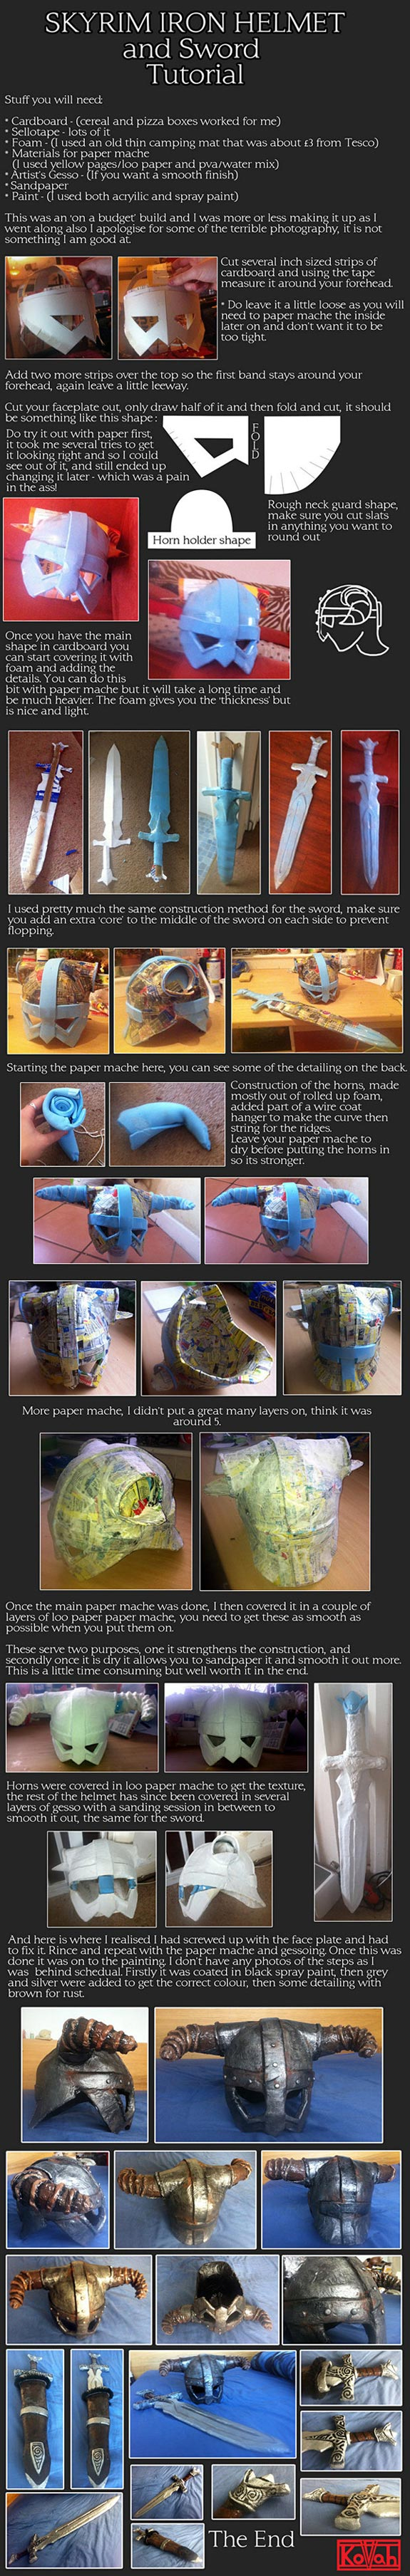 iron_helmet_and_sword_cosplay_tutorial_by_kovah-d620i70